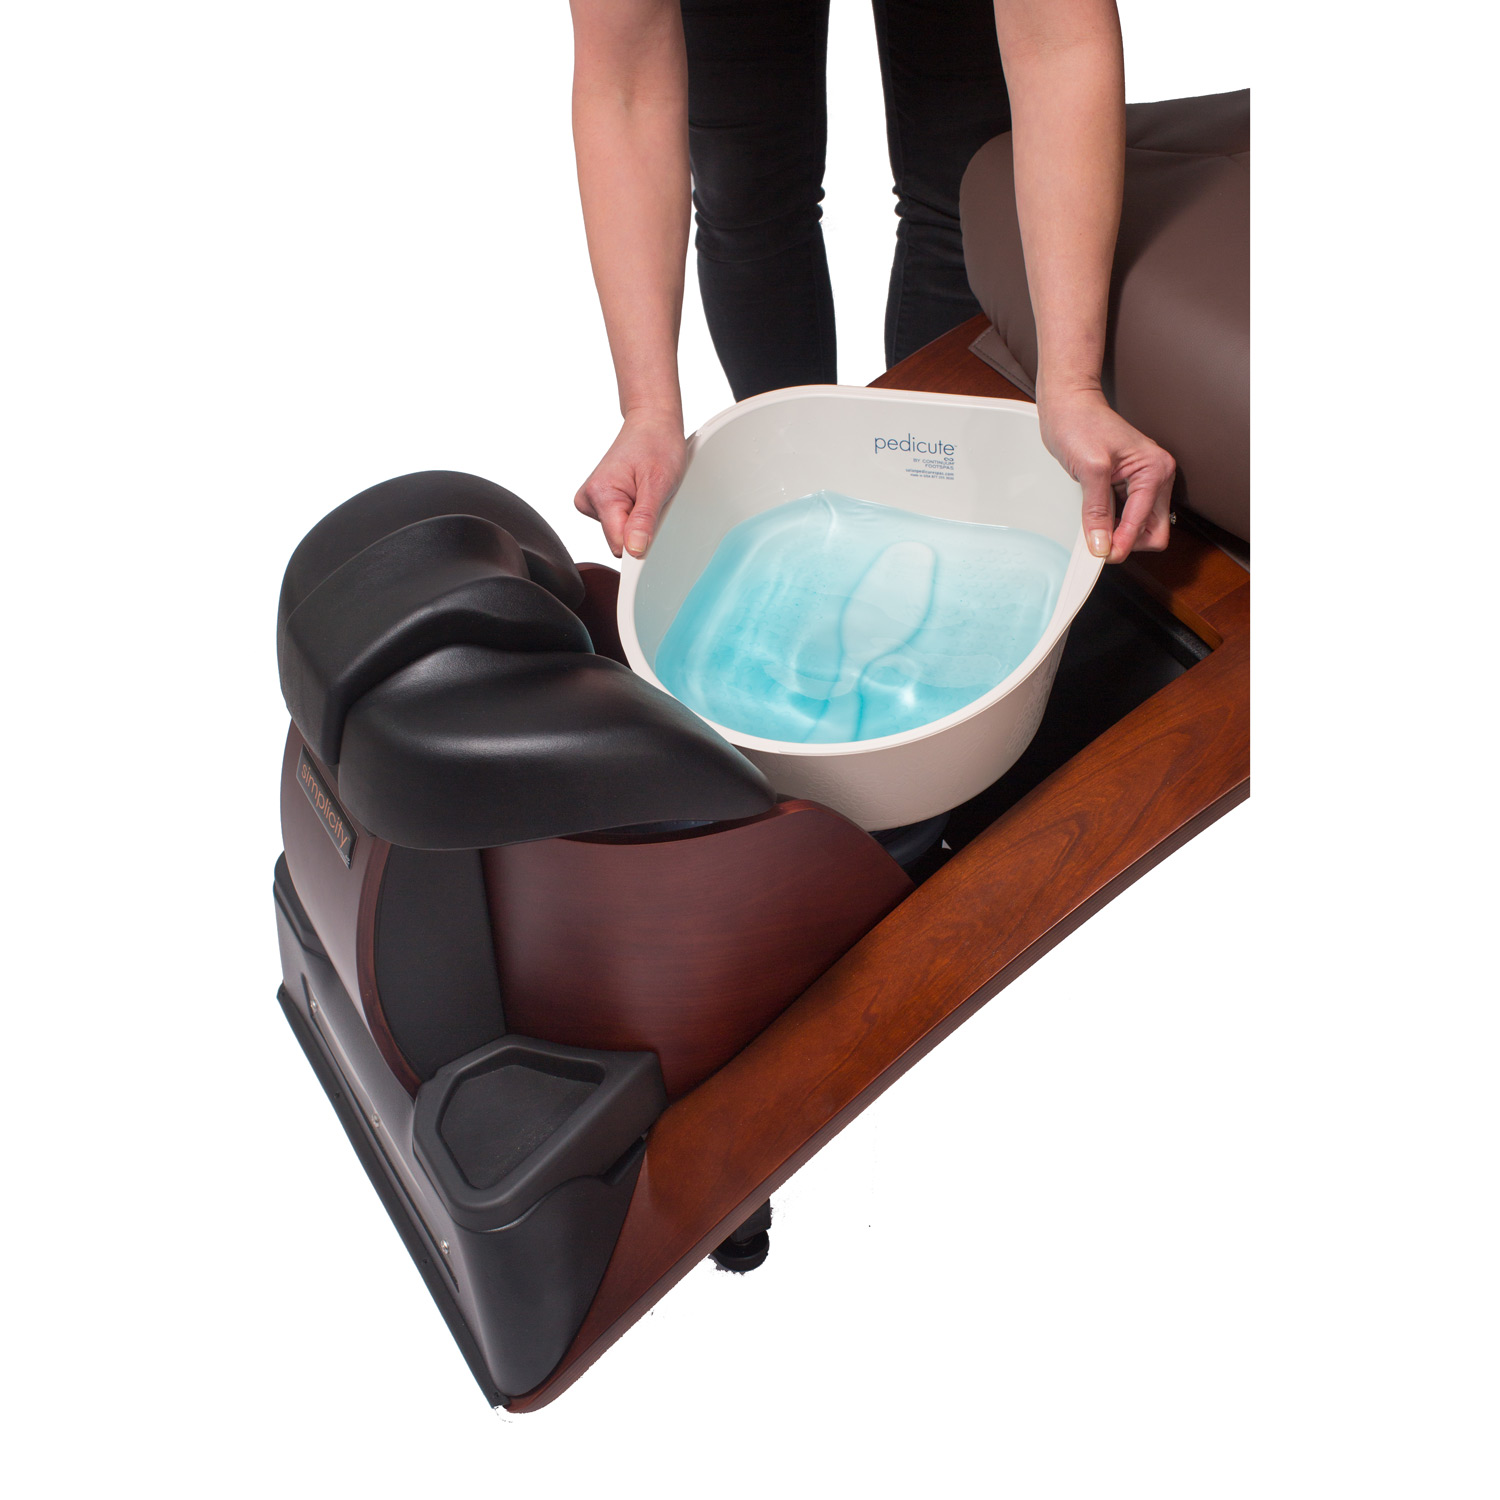 Continuum Simplicity Plus-LE No Plumbing Pedicure Spa Chair alternative product image 1